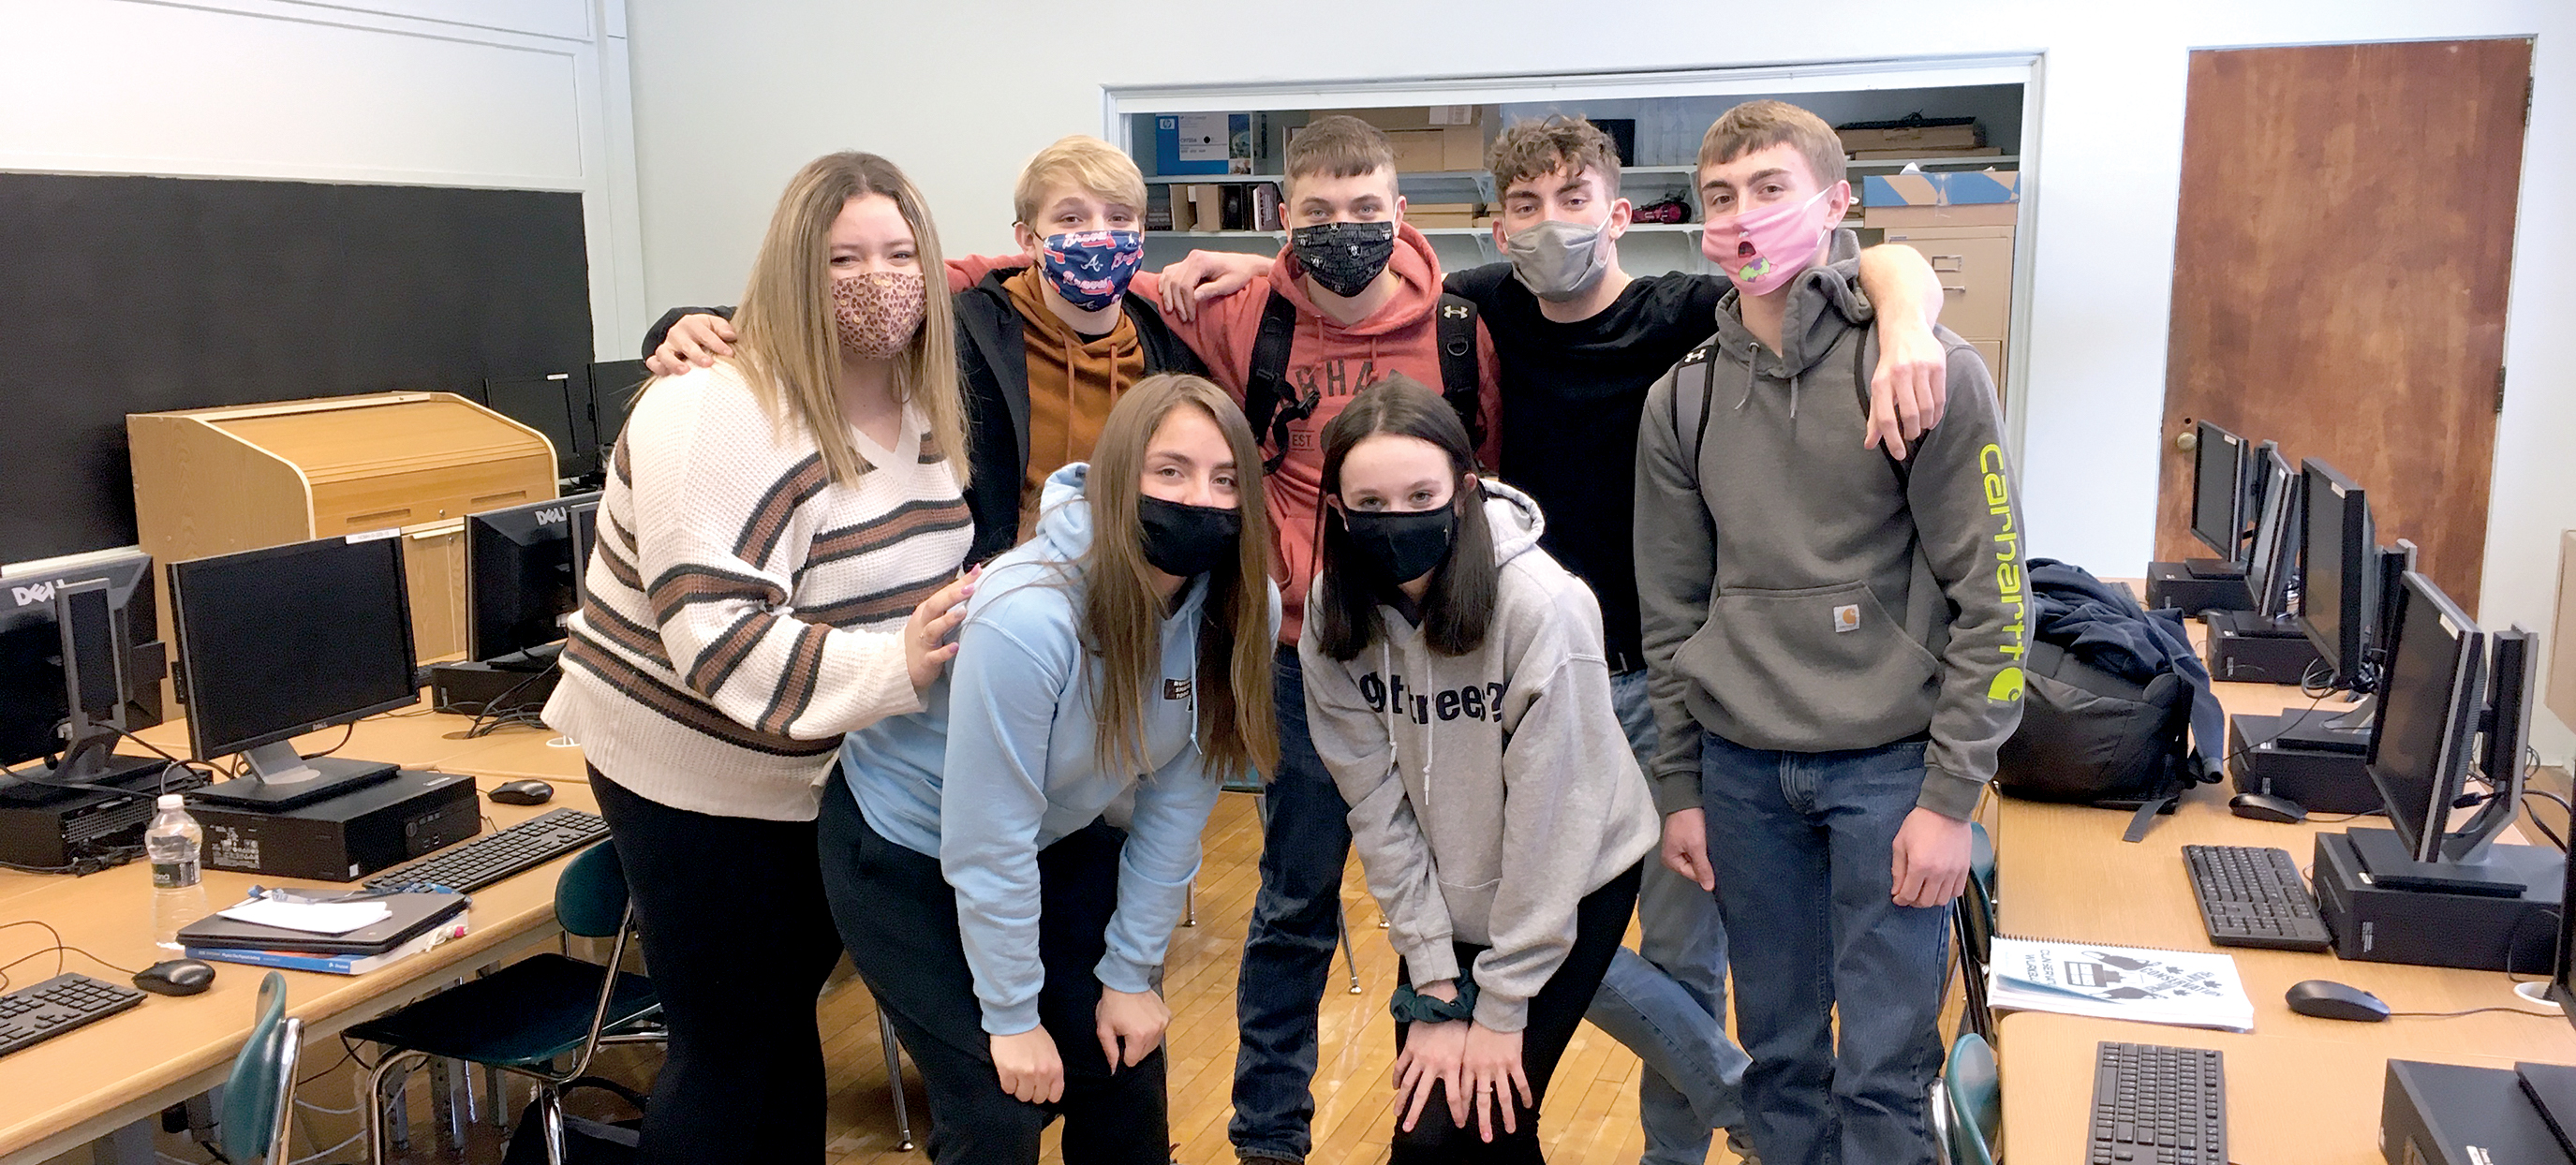 Students in classroom with masks